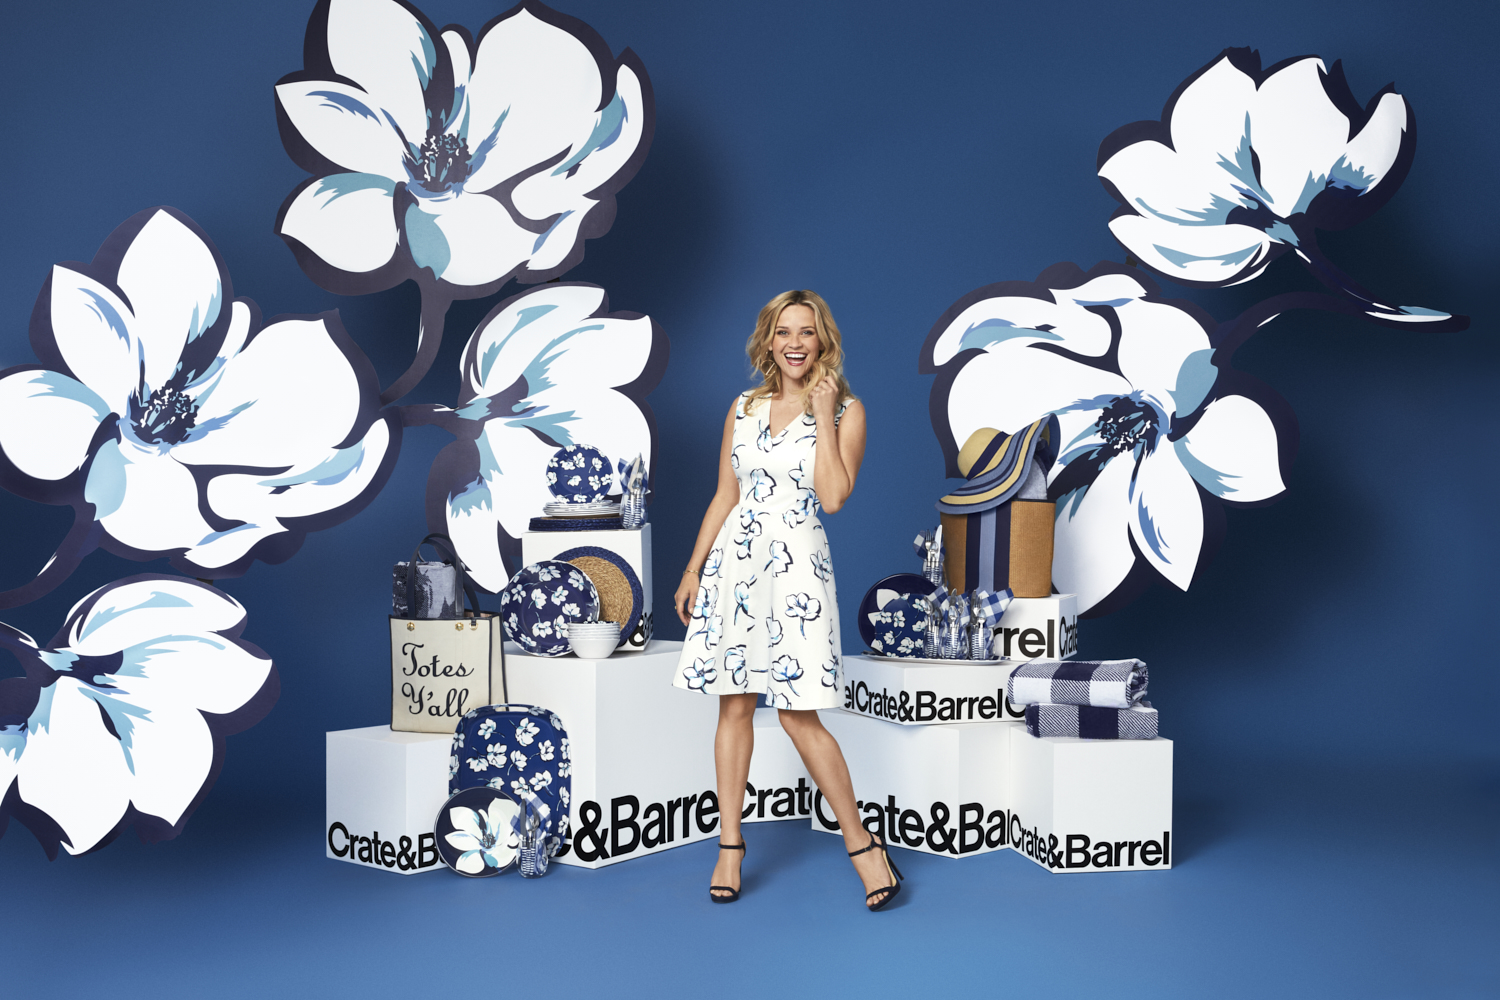 180202_CRATE_BARREL_REESE_WITHERSPOON_S1_0170_V4_QC.jpg